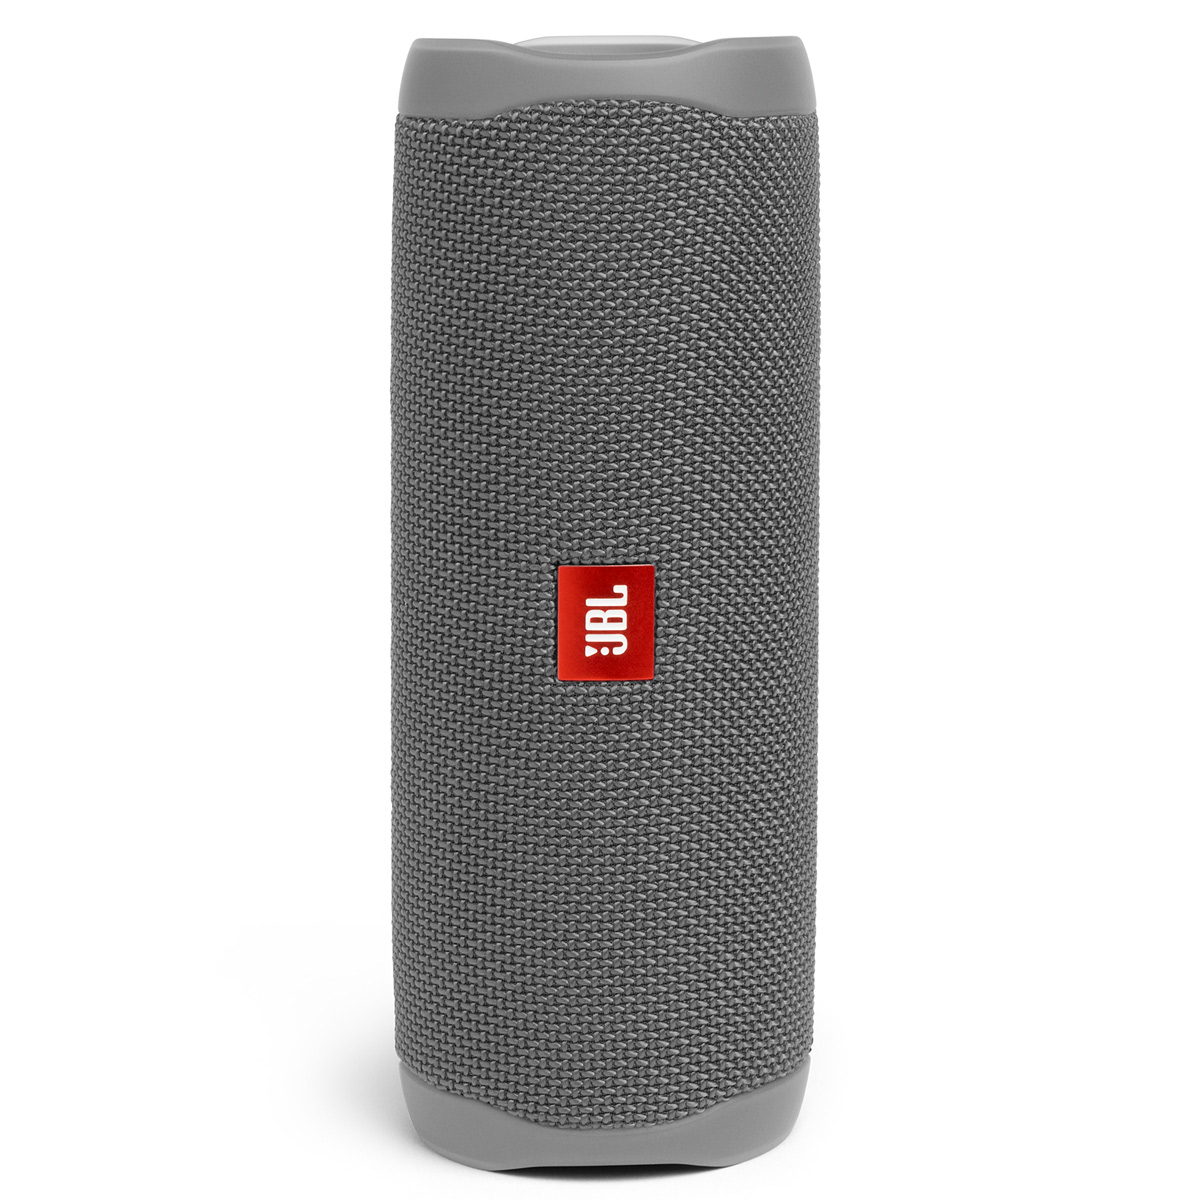 JBL-Flip-5-Portable-Waterproof-Bluetooth-Speaker thumbnail 19